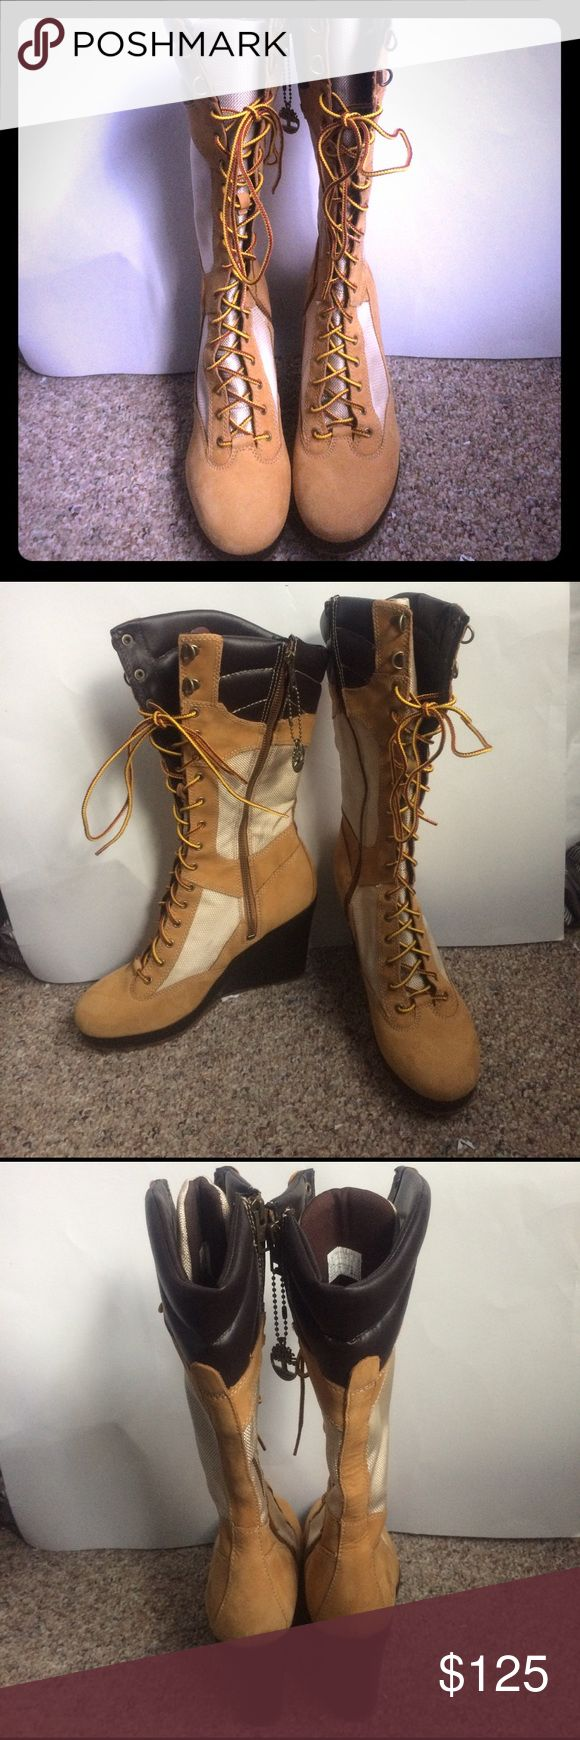 Timberland Knee High Wedge Boots Only worn once! Excellent condition, fit true to size. Timberland Shoes Heeled Boots